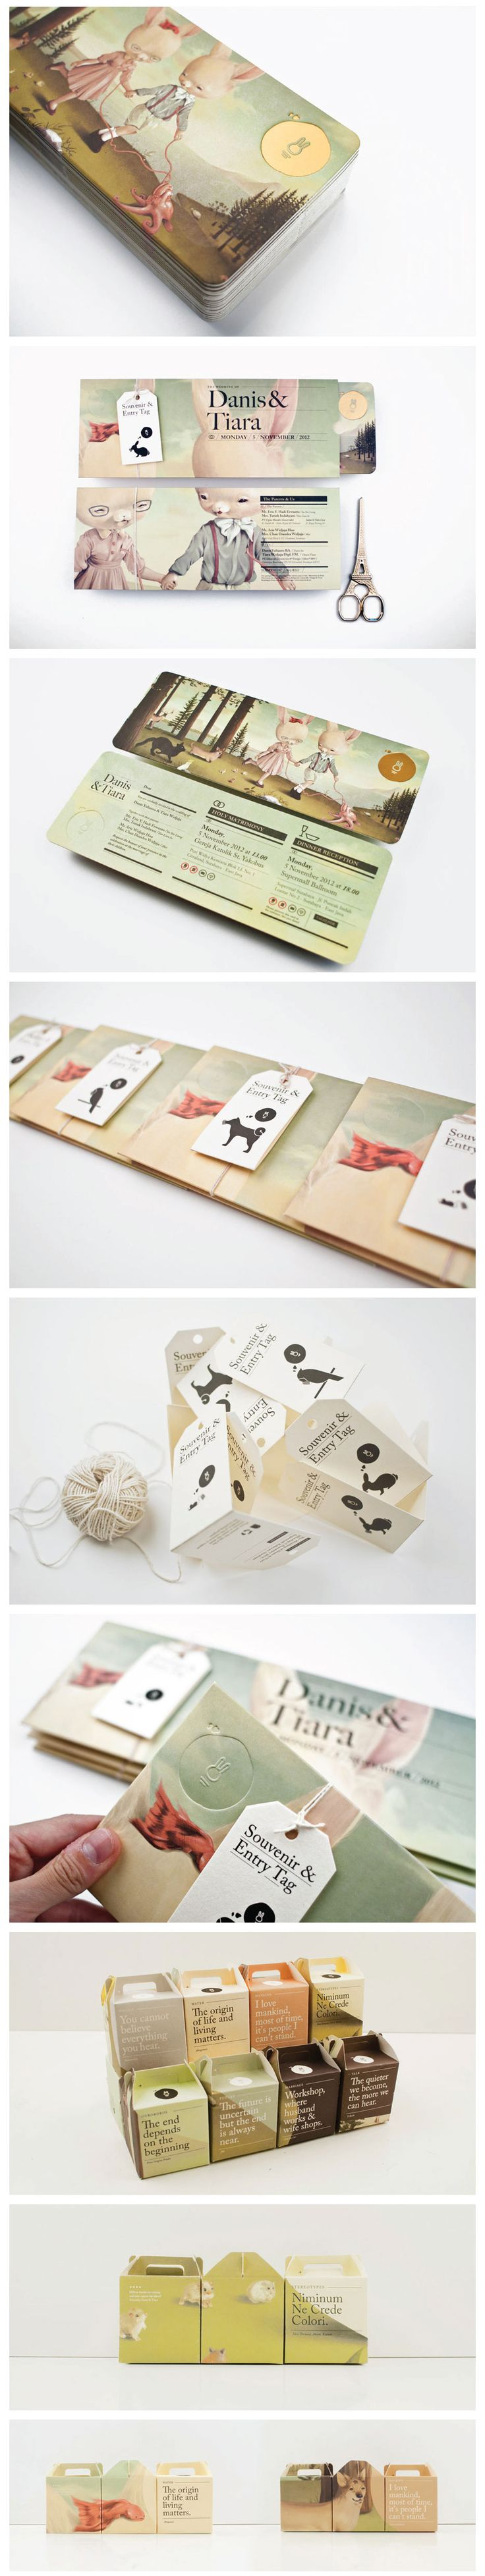 @Paggie Yu beautiful tea story #packaging #branding #marketing PD